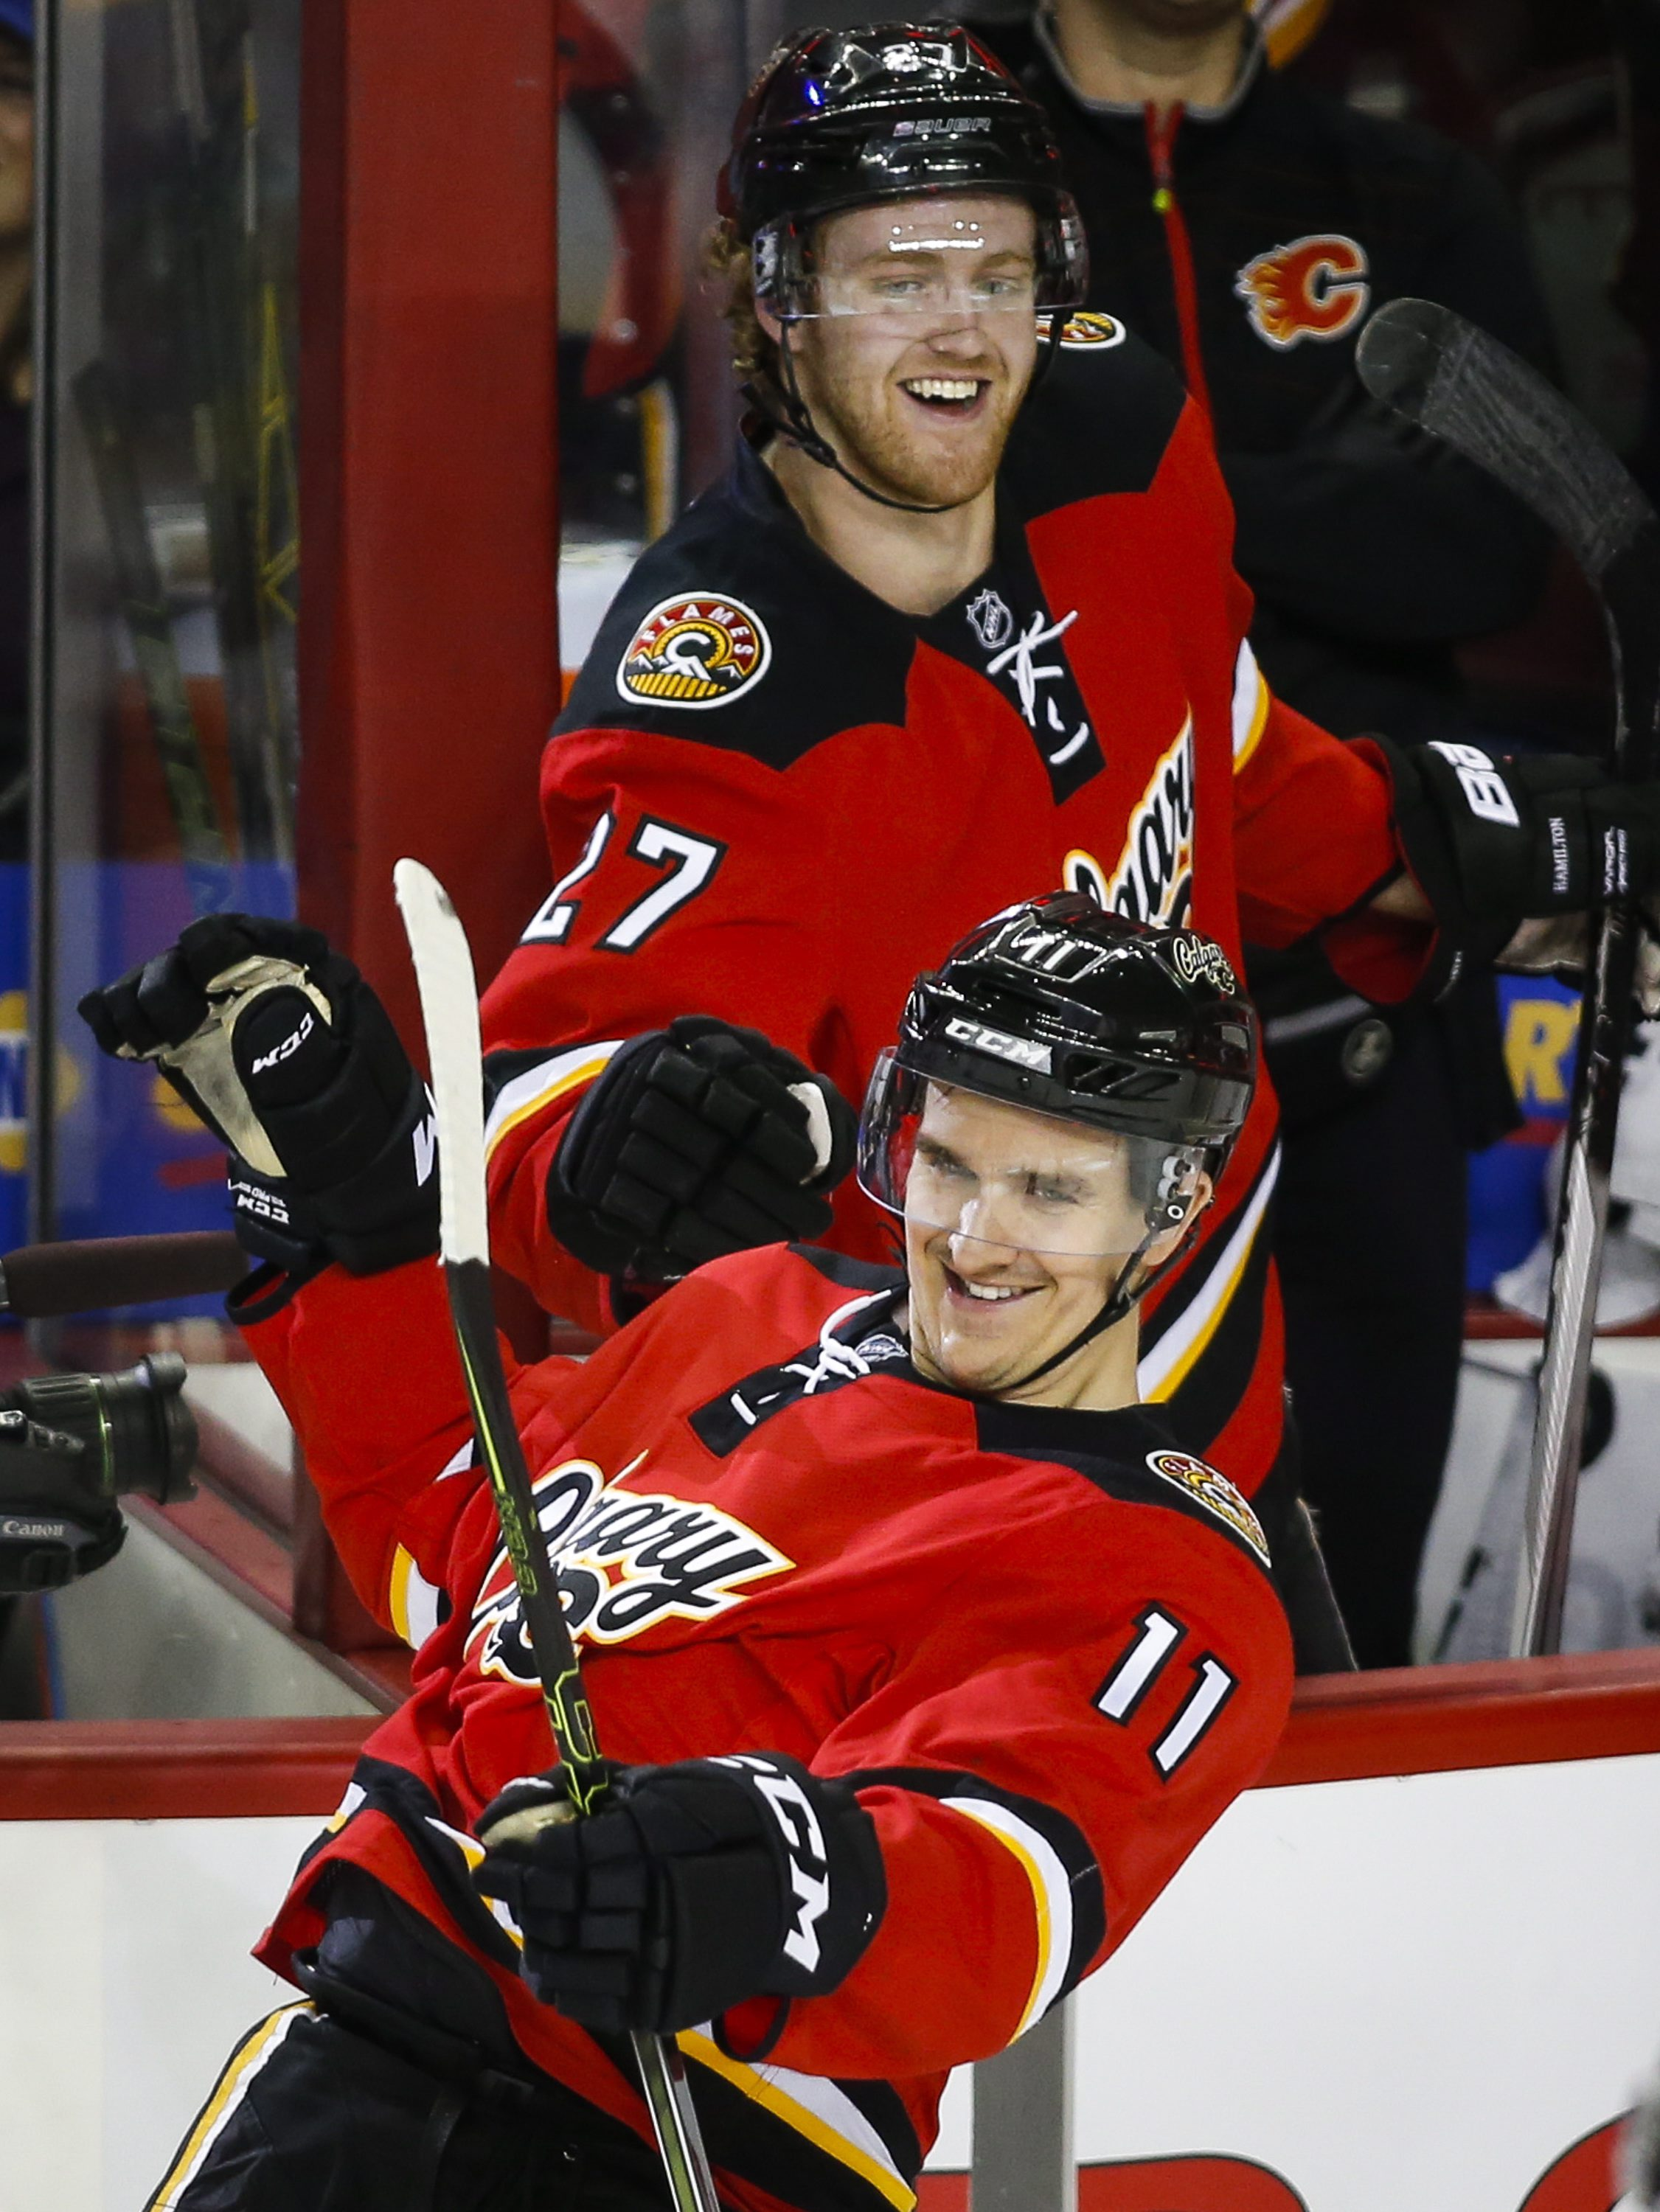 Calgary Flames' Mikael Backlund, right, from Sweden, is congratulated on his hat trick by teammate Dougie Hamilton during the second period of an NHL hockey game against the Vancouver Canucks on Thursday, April 7, 2016, in Calgary, Alberta. (Jeff McIntosh